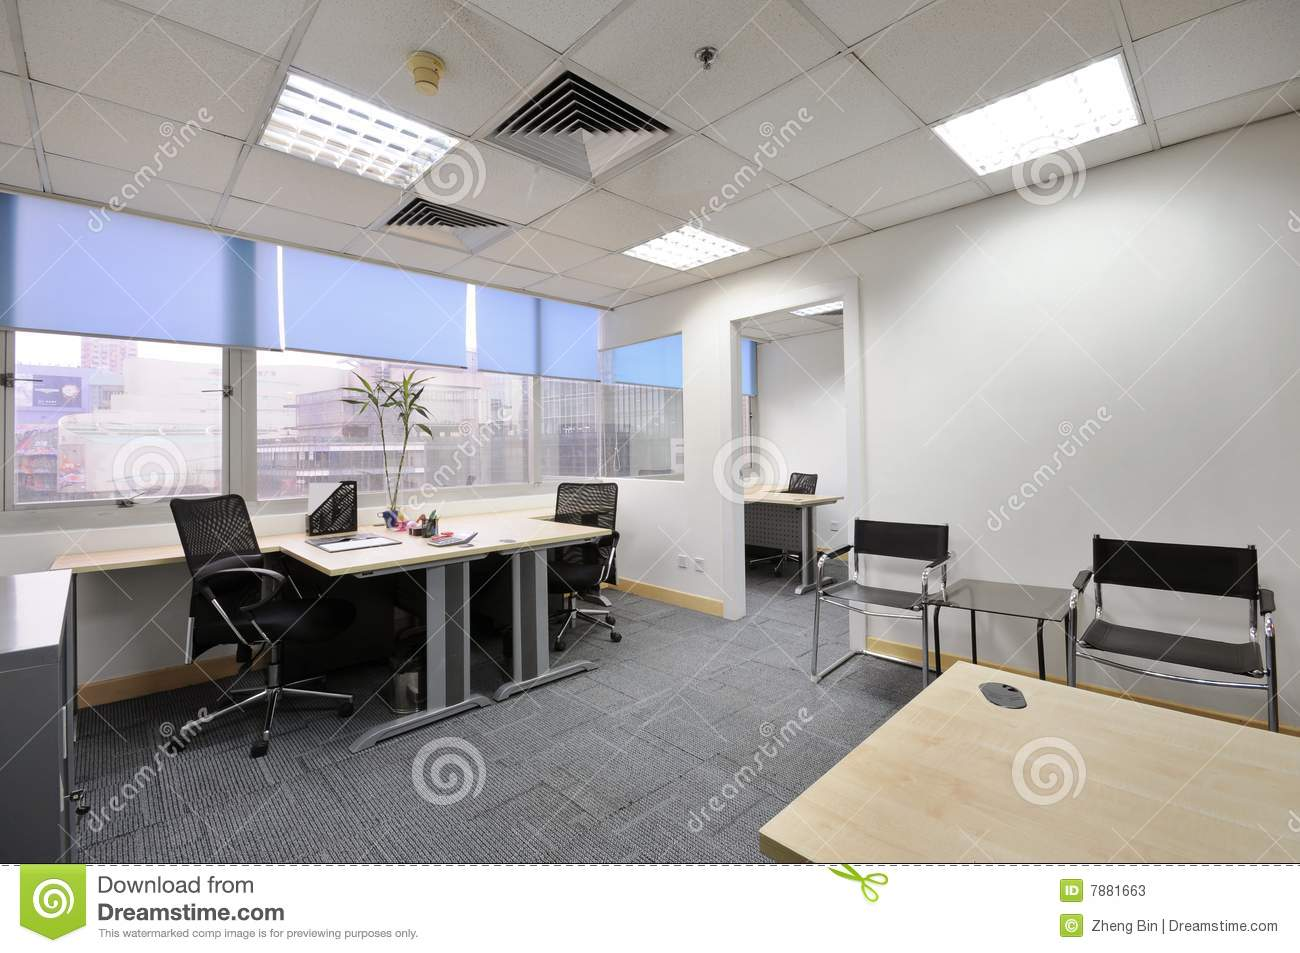 3d House Wallpaper Room Office Room Stock Photos Image 7881663